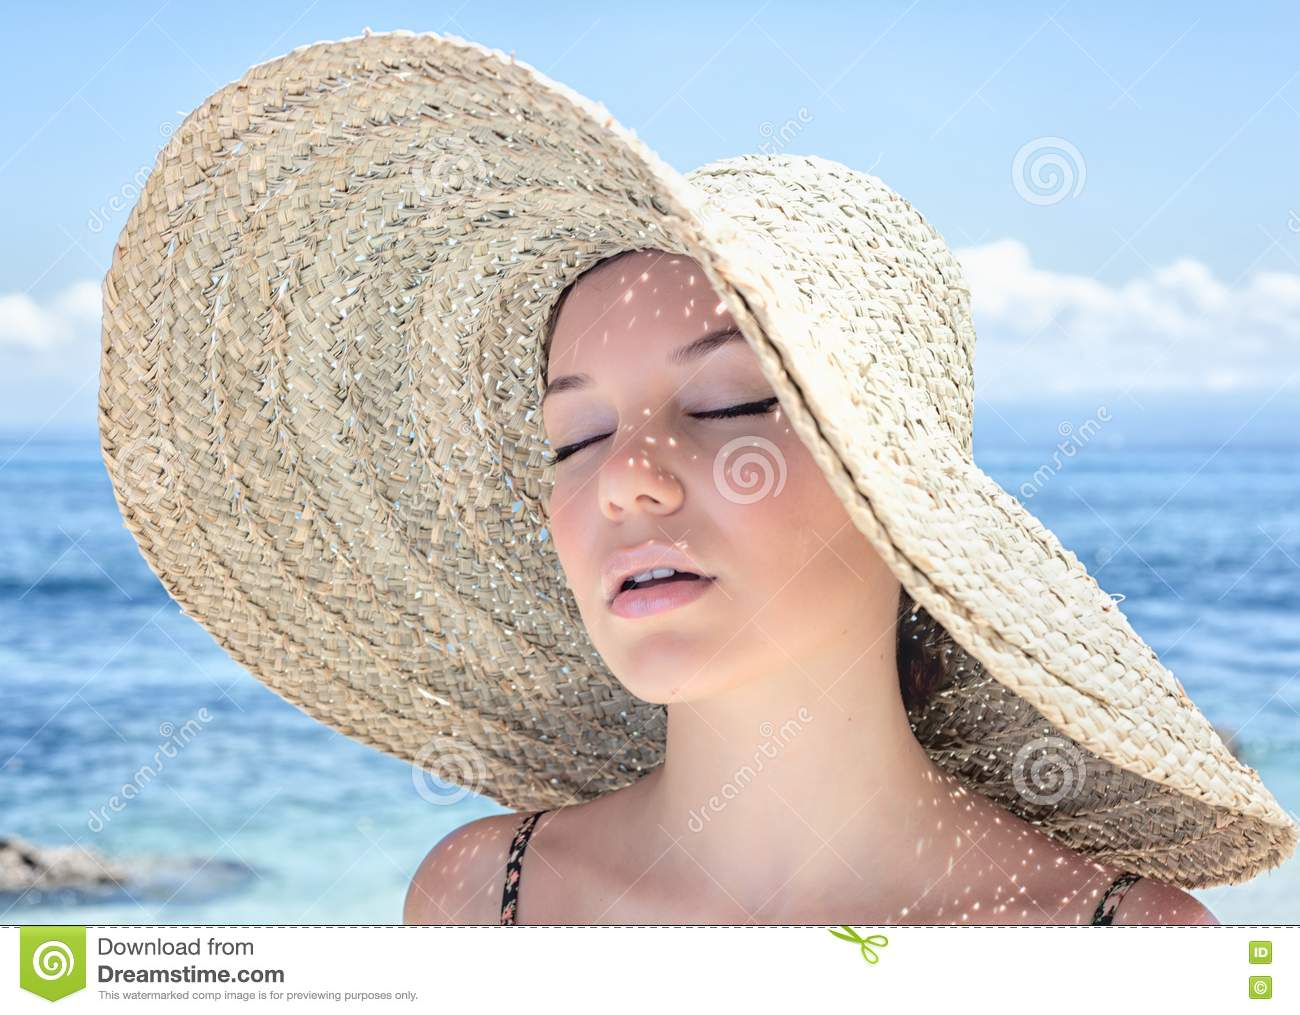 Beautiful Woman Stock Images - Image: 30389044 - photo#19